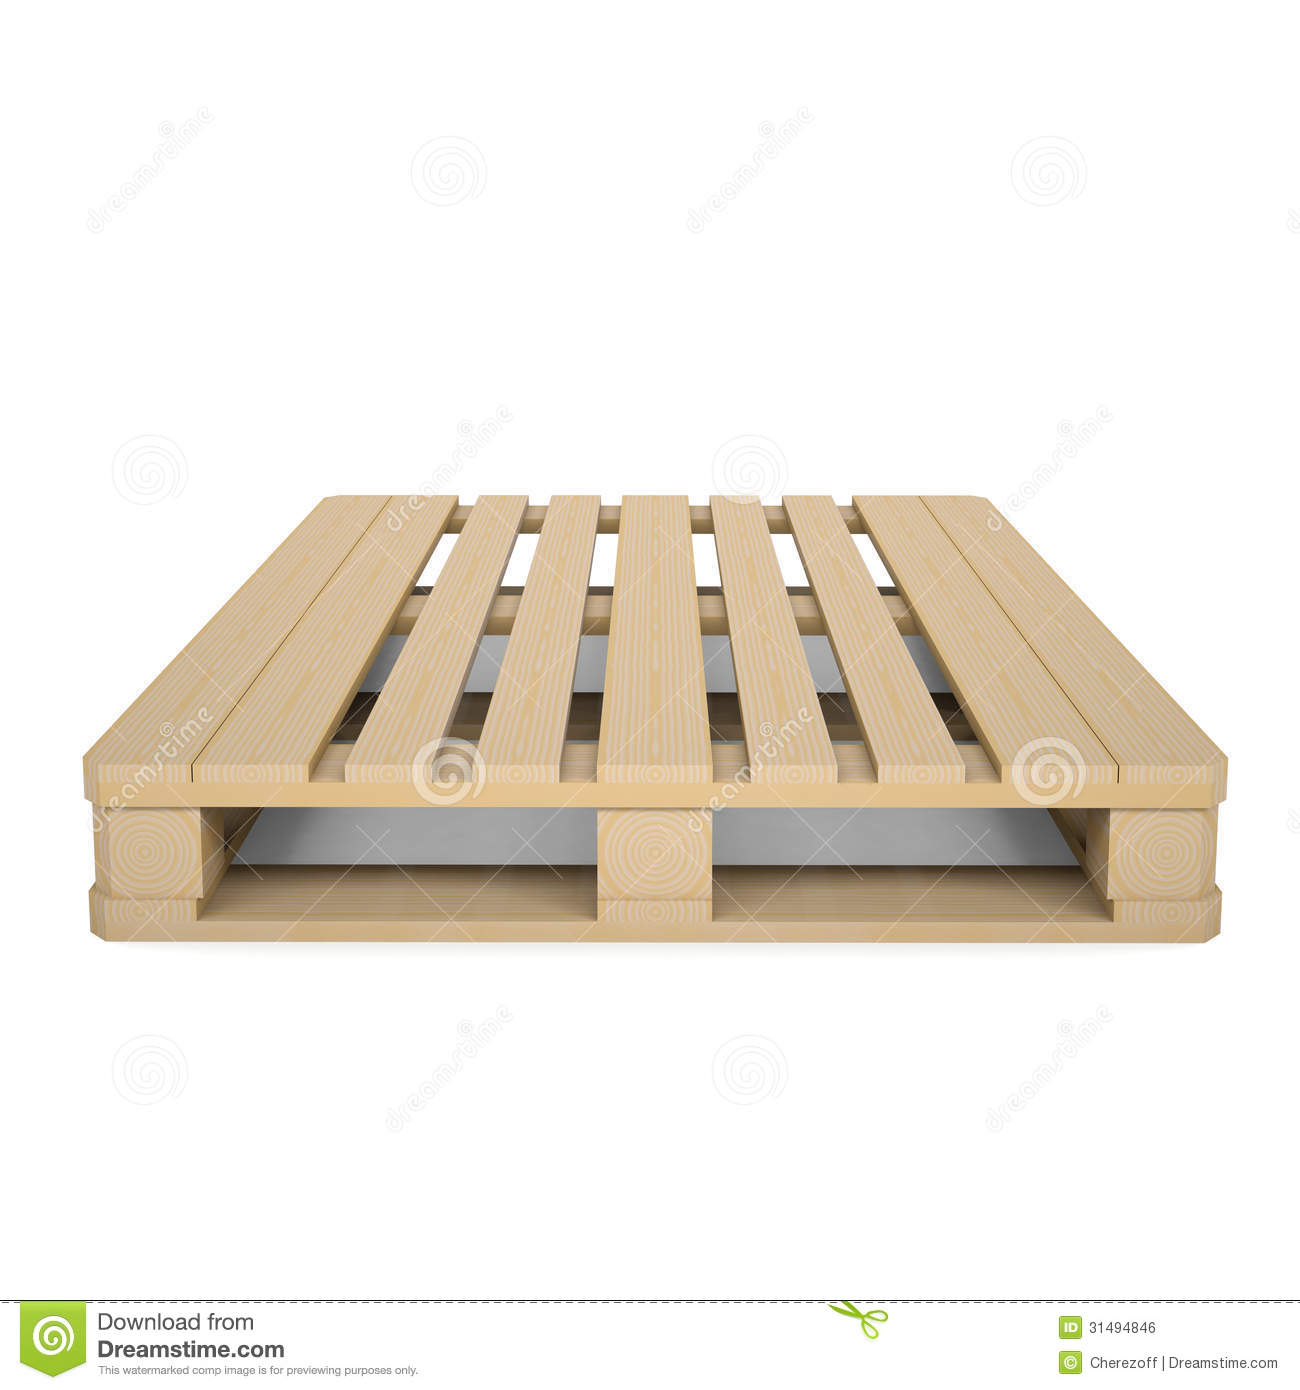 Wooden Pallet Royalty Free Stock Image - Image: 31494846